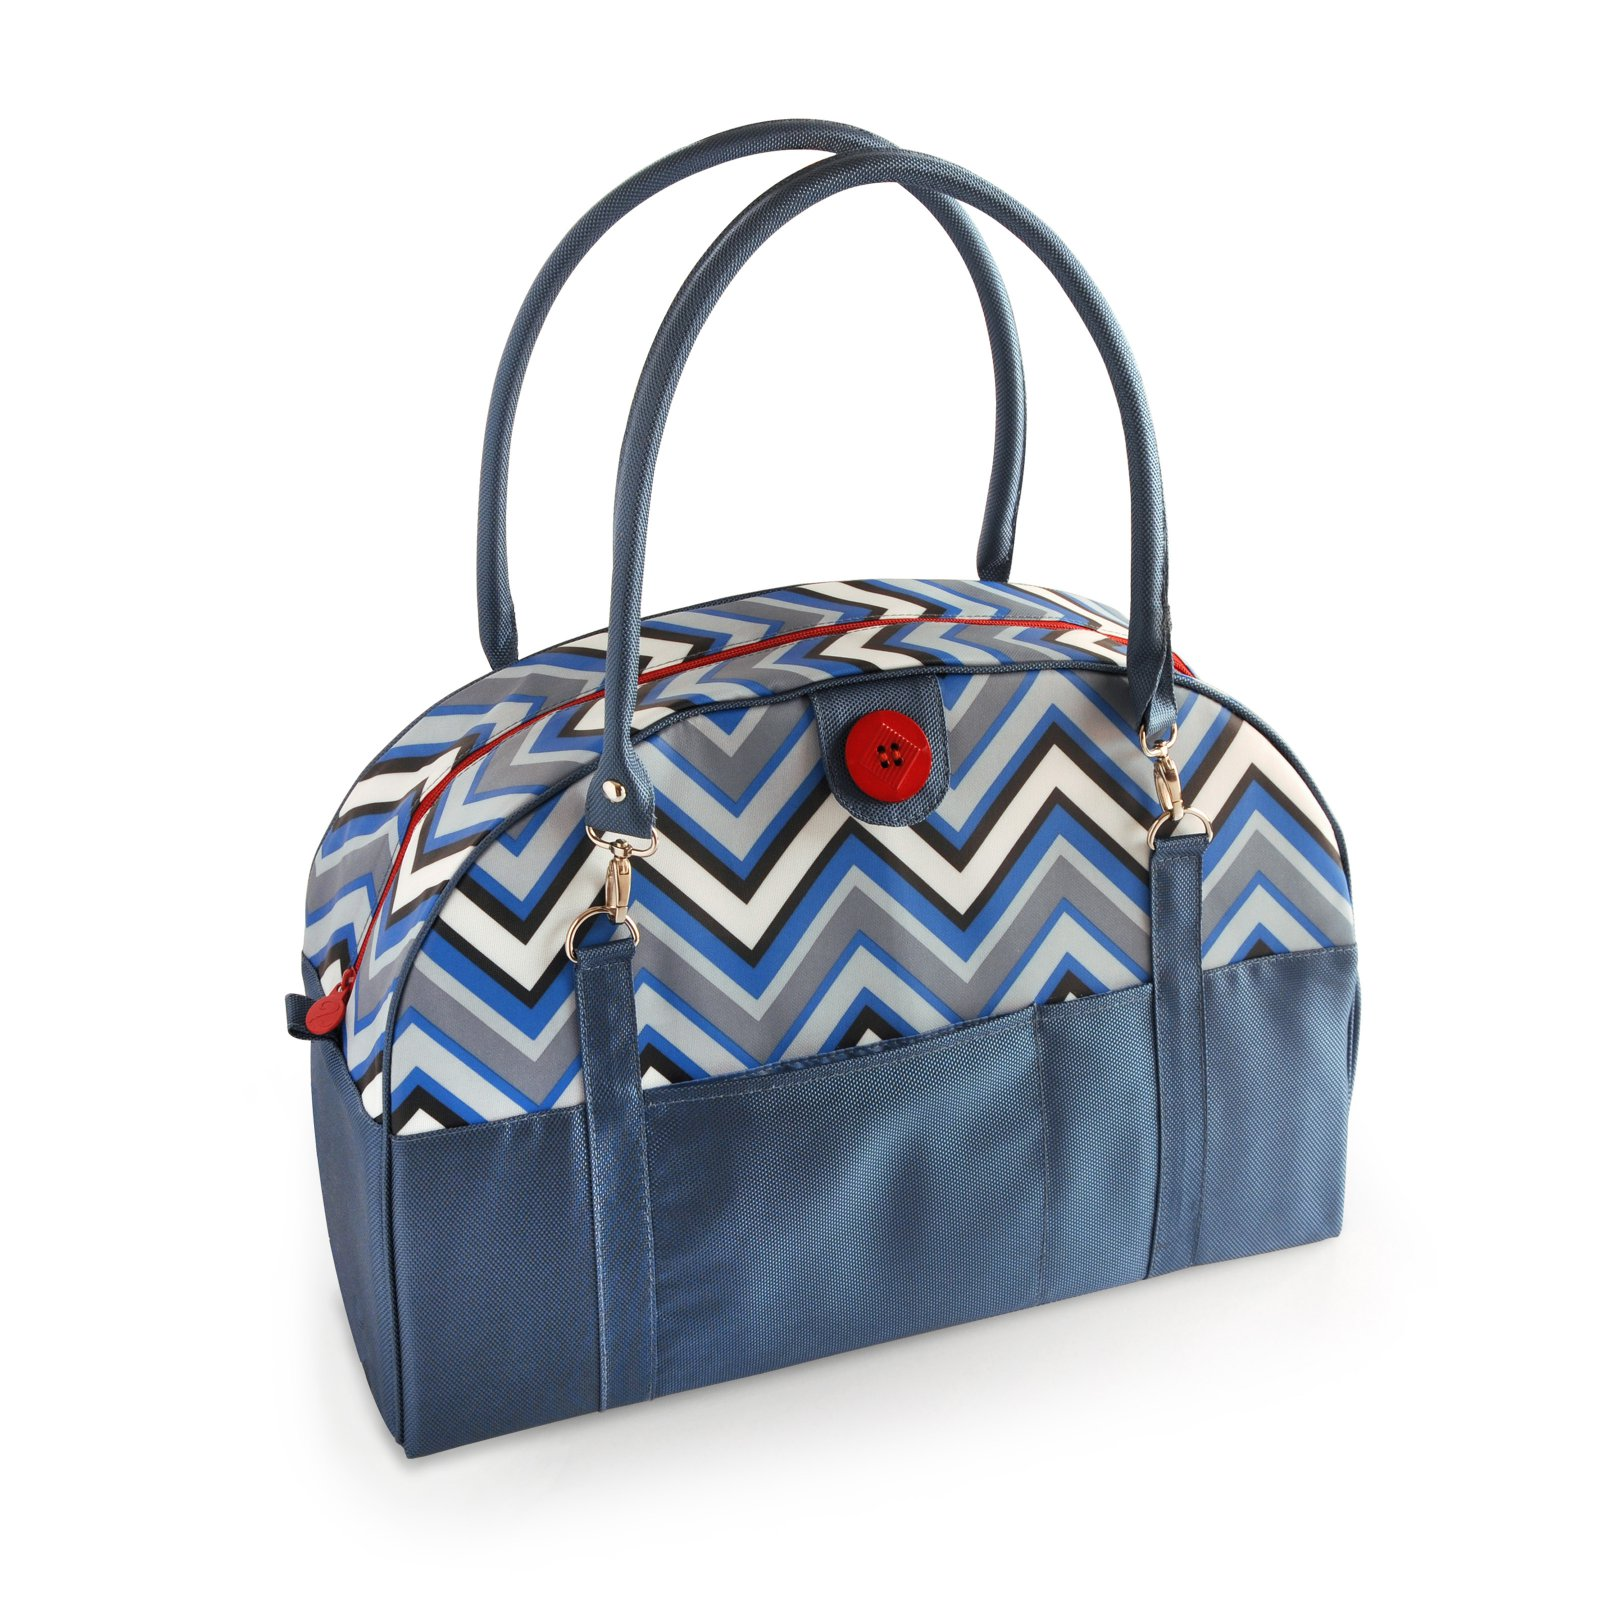 2 Red Hens Coop Carry-All Diaper Bag - Chevron Stripes